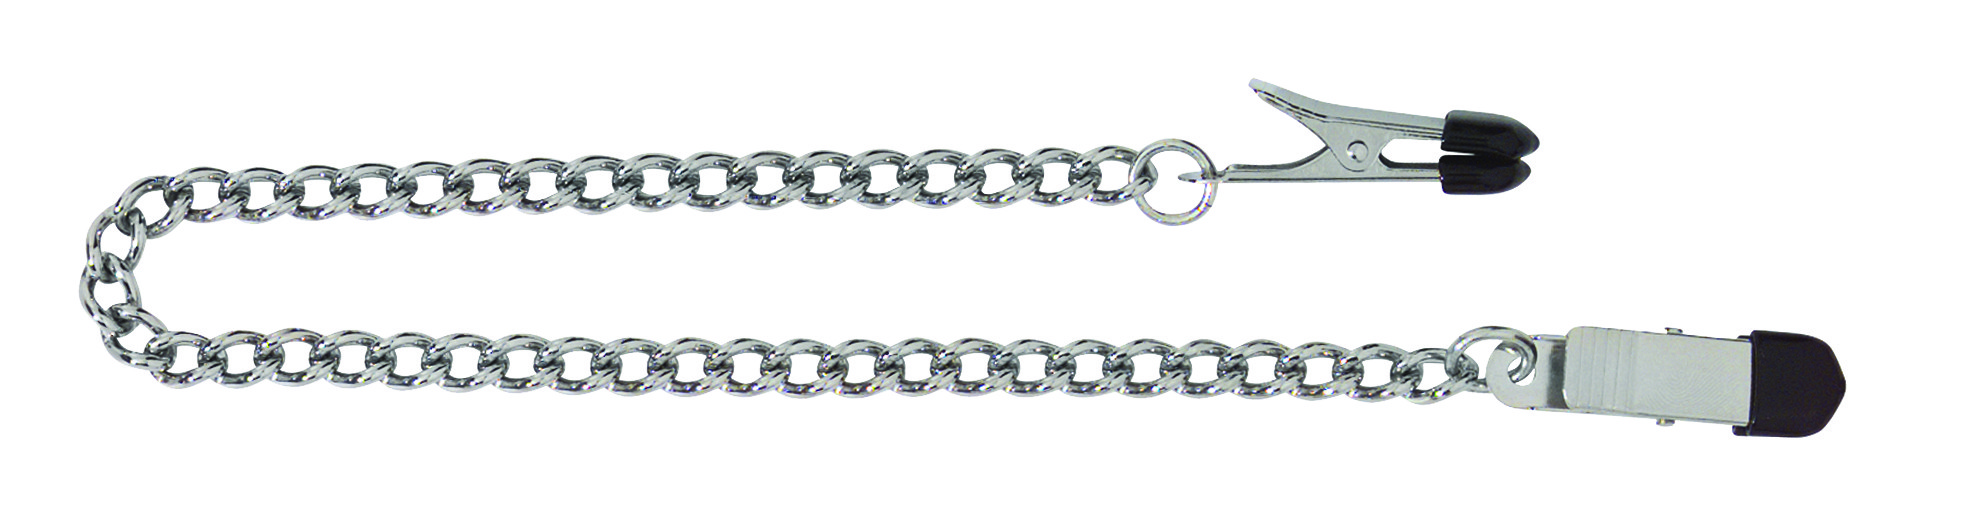 Endurance Broad Tip Clamps - Link Chain